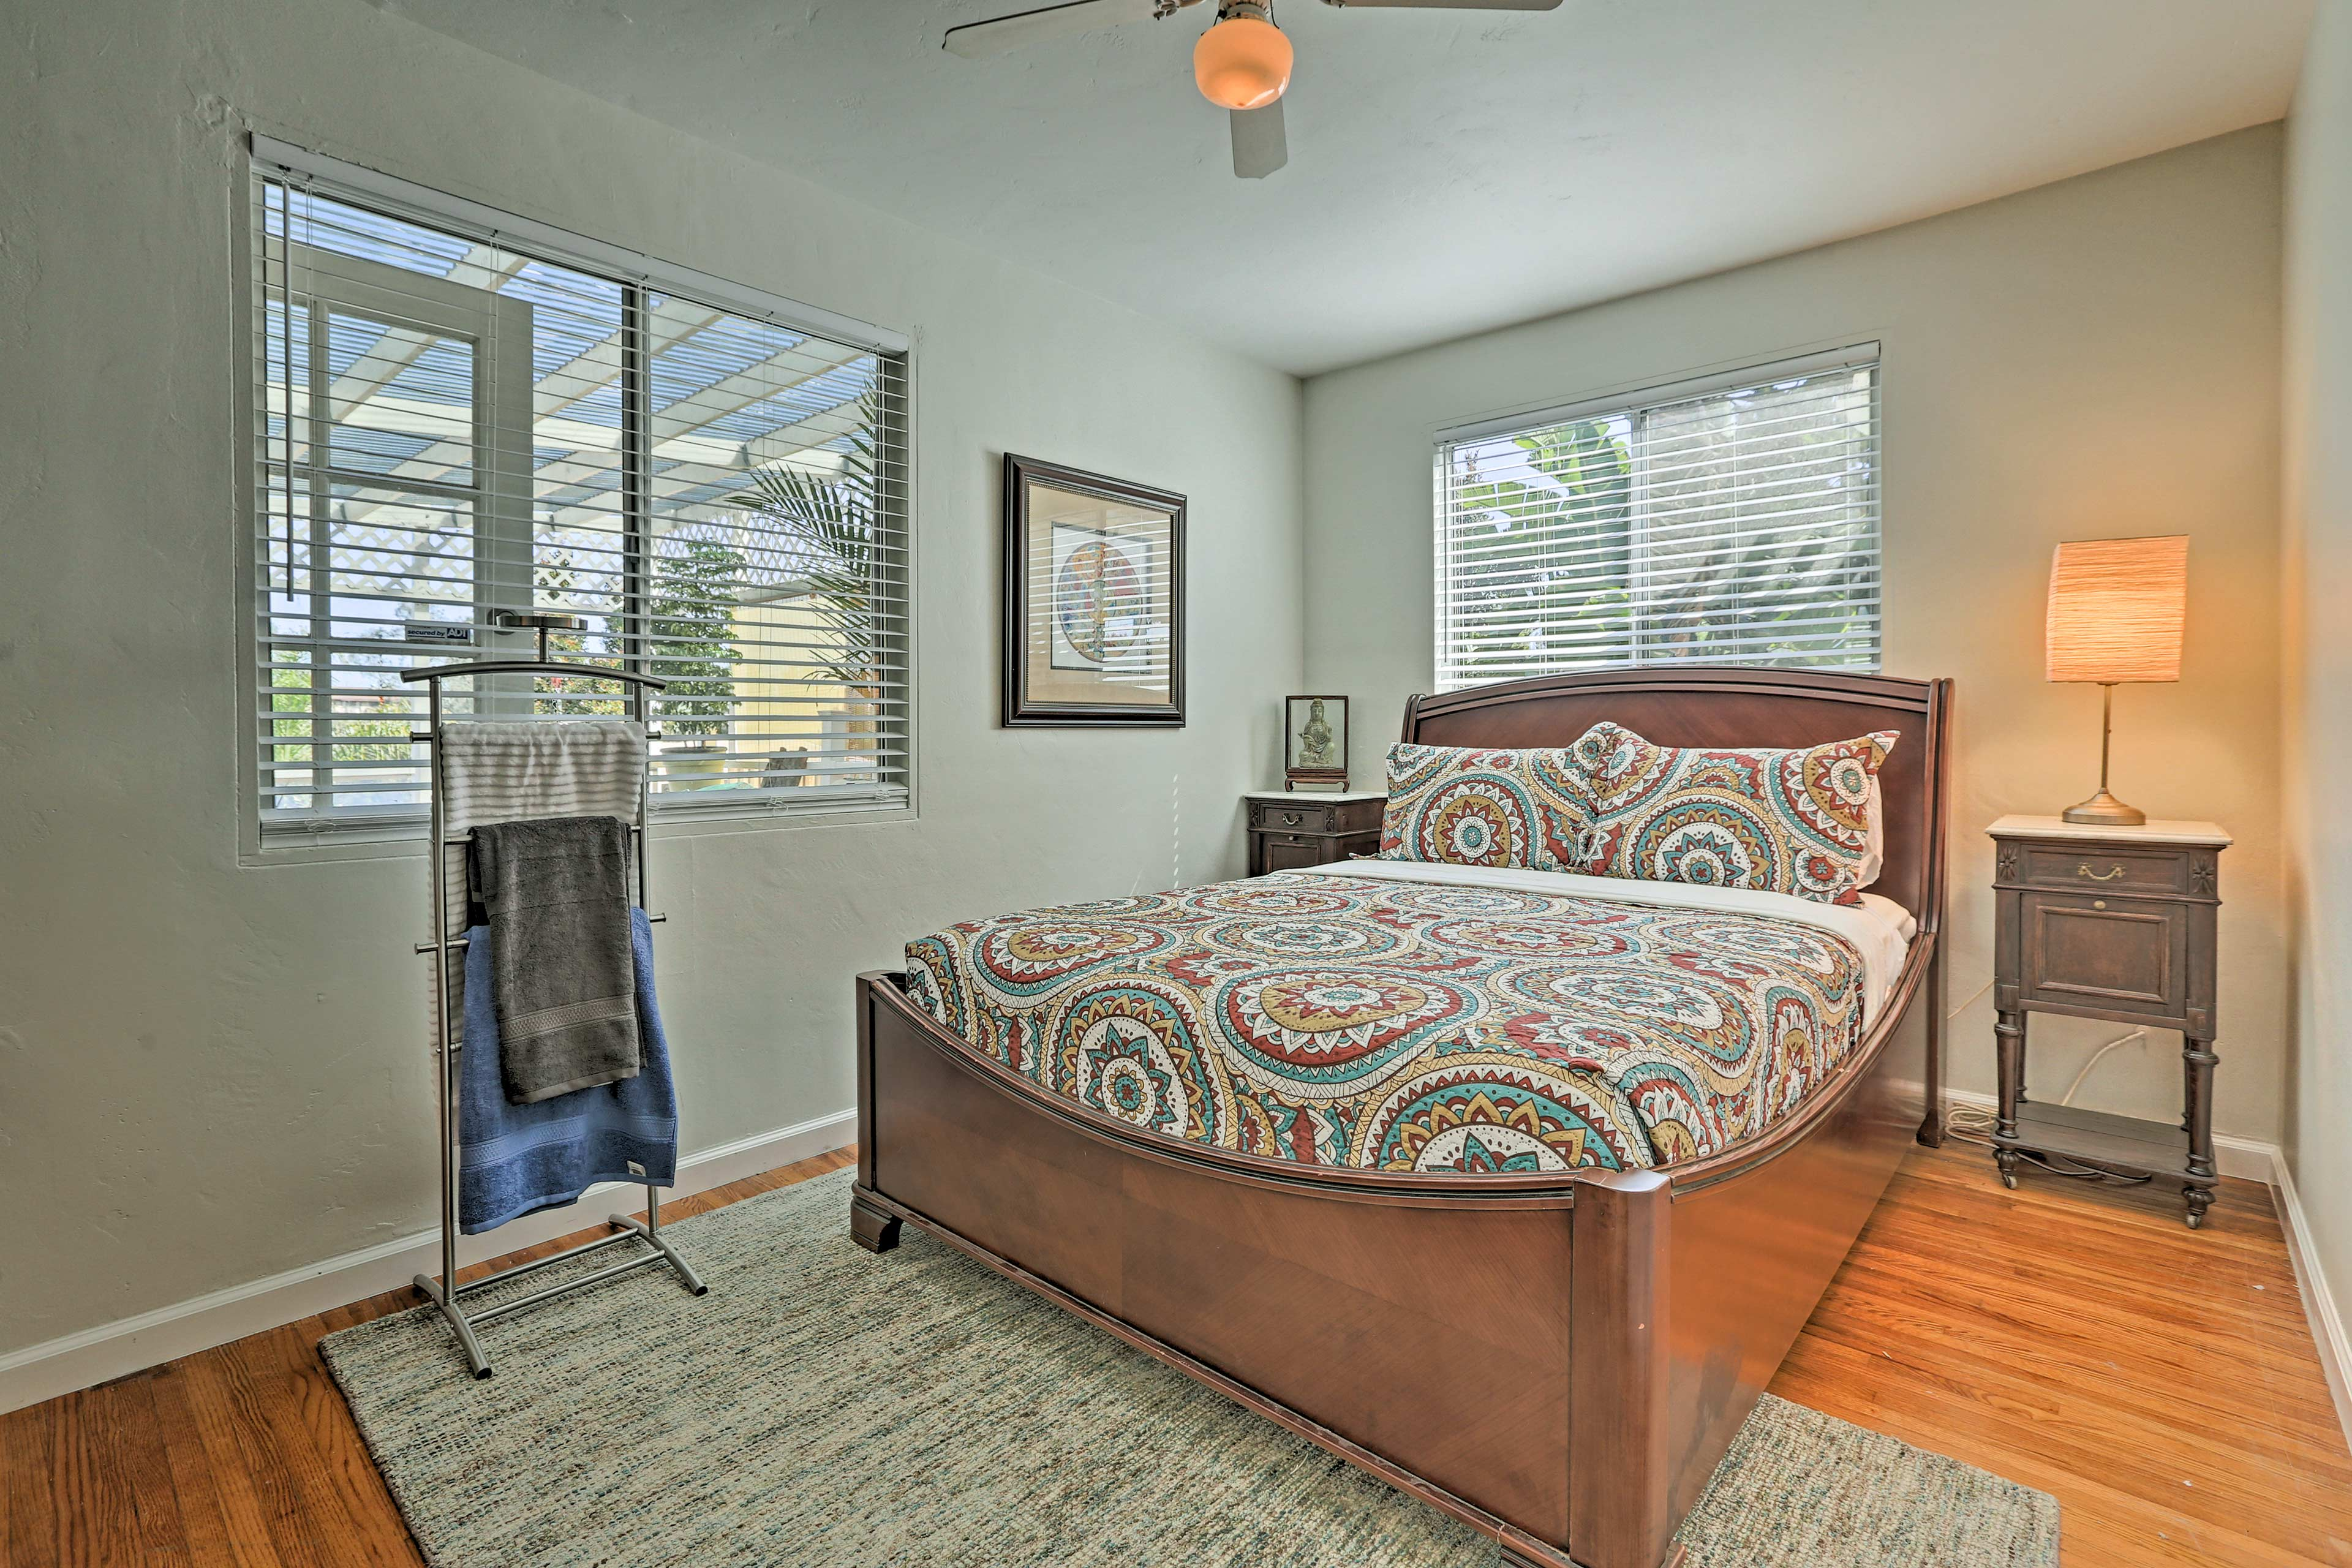 The second bedroom offers a calming atmosphere with a queen bed and ceiling fan.